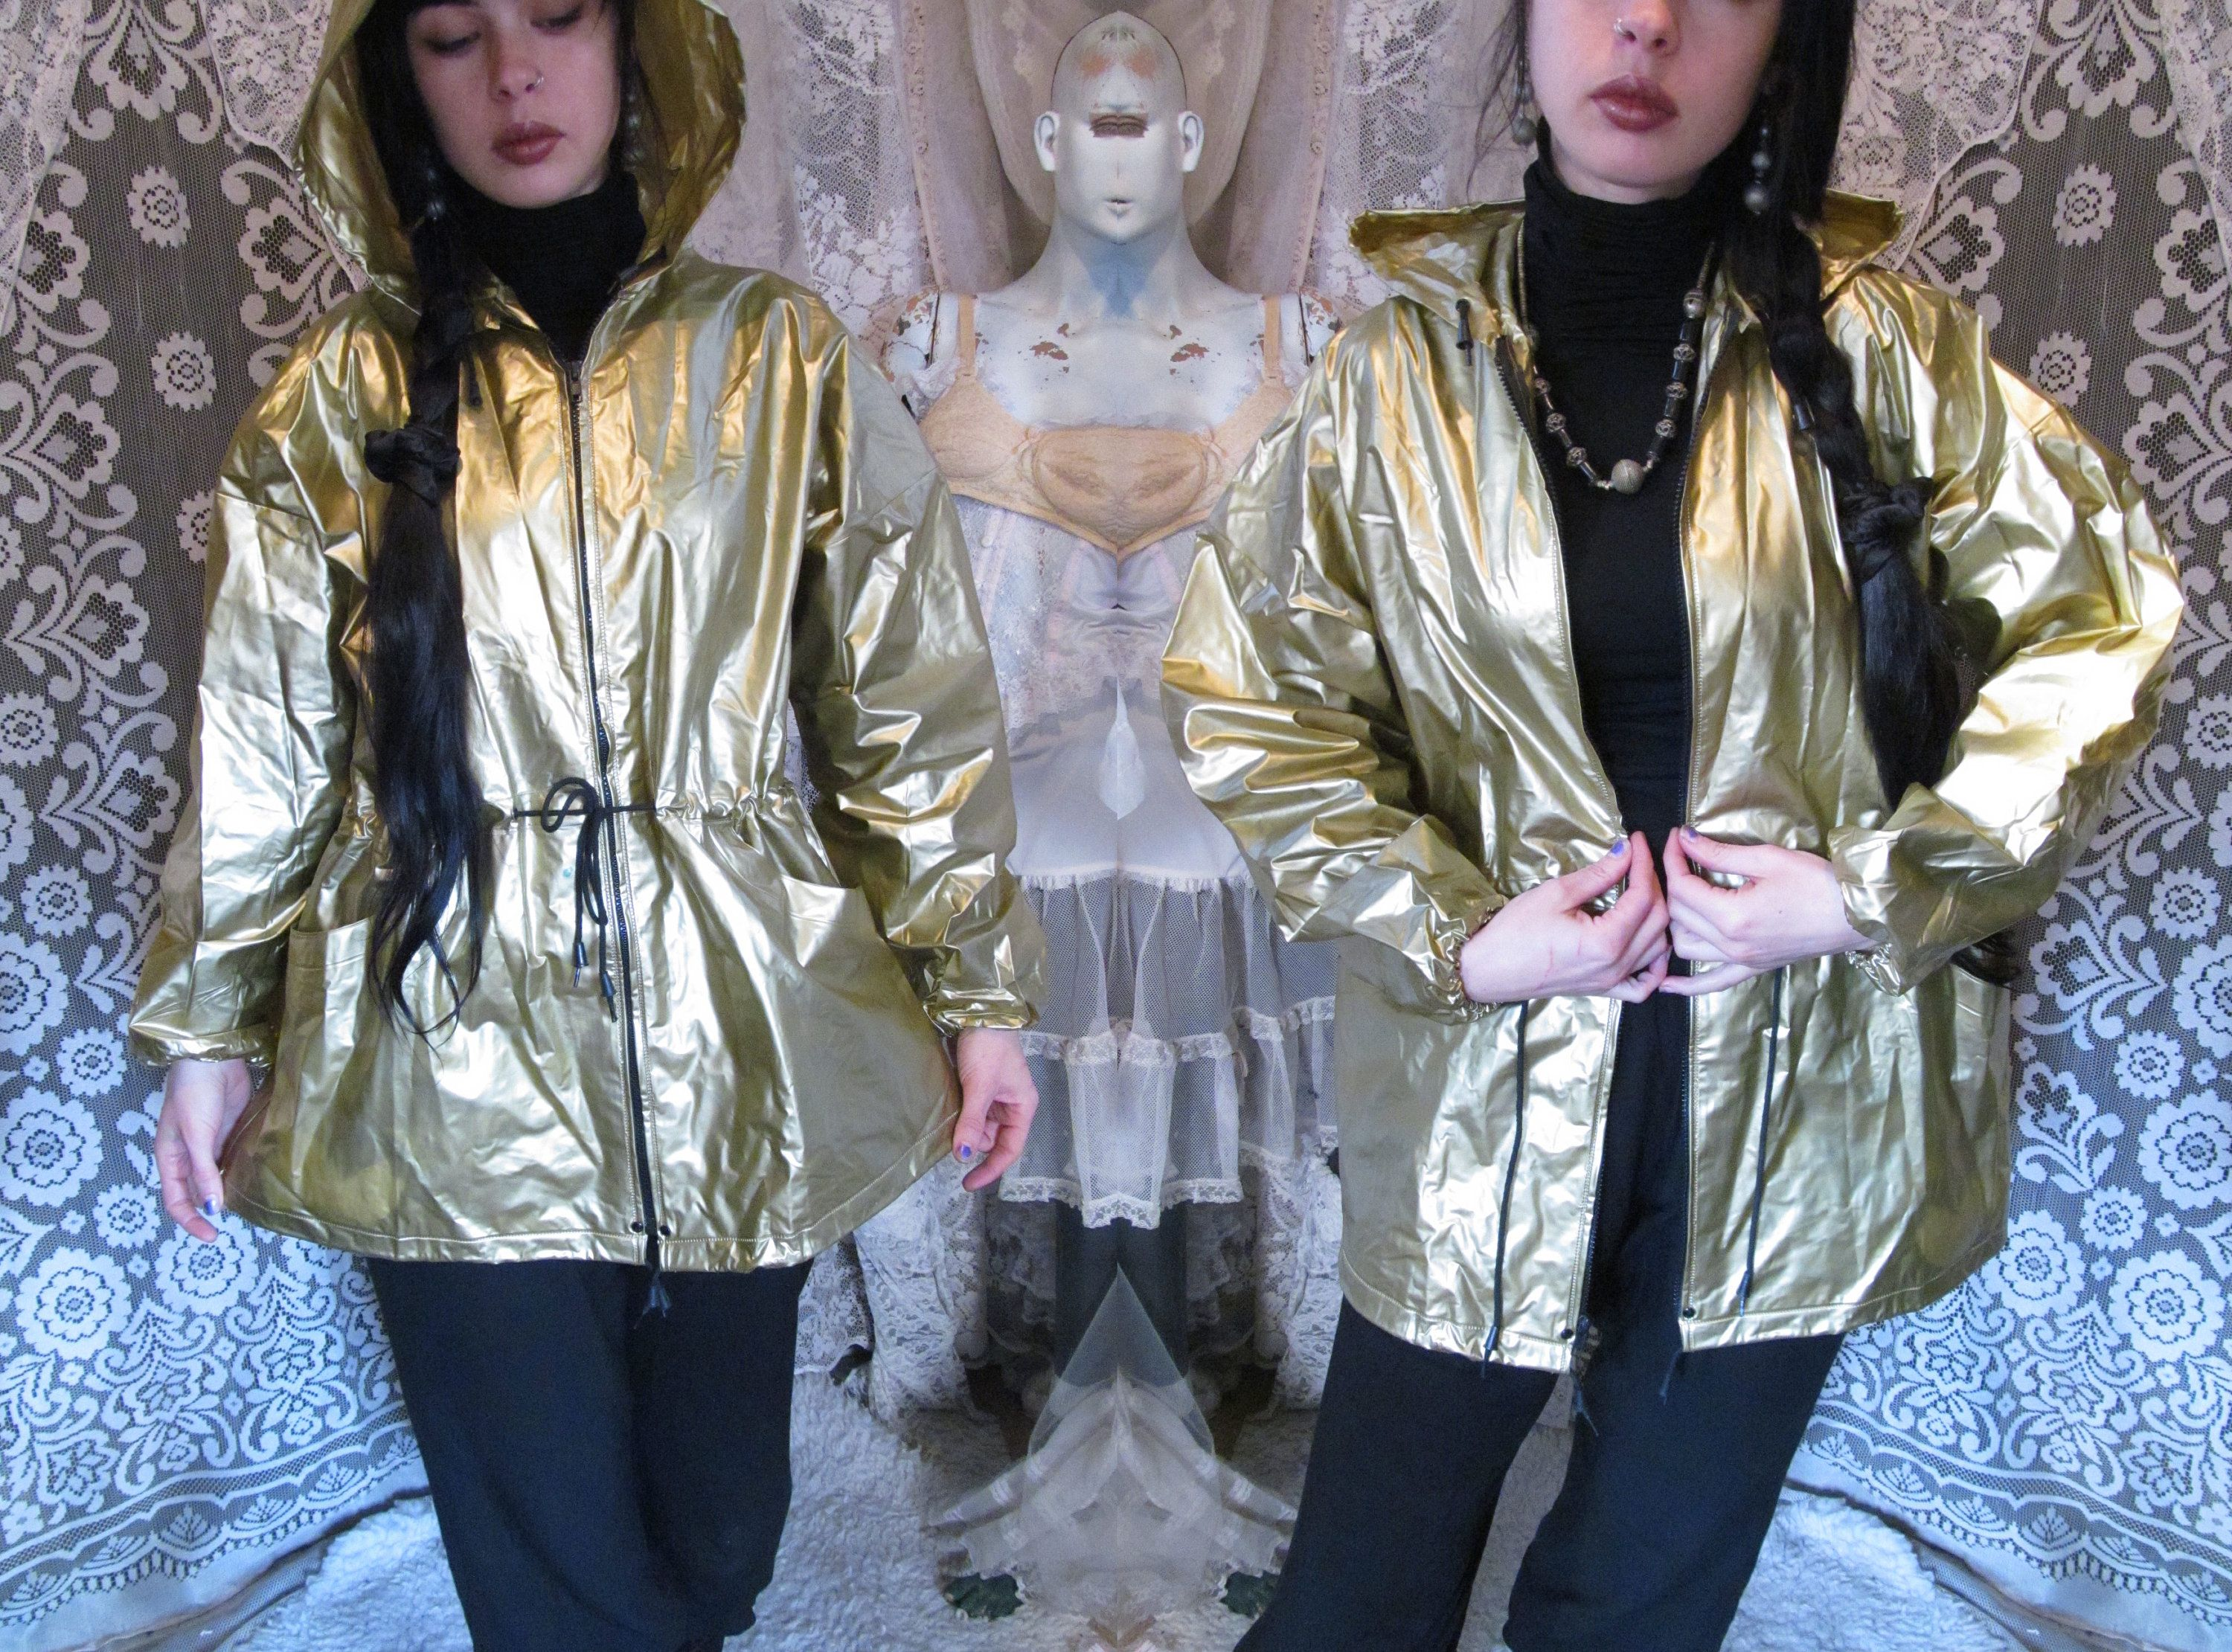 Gold Vinyl Raincoat 80s 90s Hooded Pointed Hood Pvc Shiny Etsy In 2020 Vinyl Raincoat Gold Vinyl Vintage Outfits